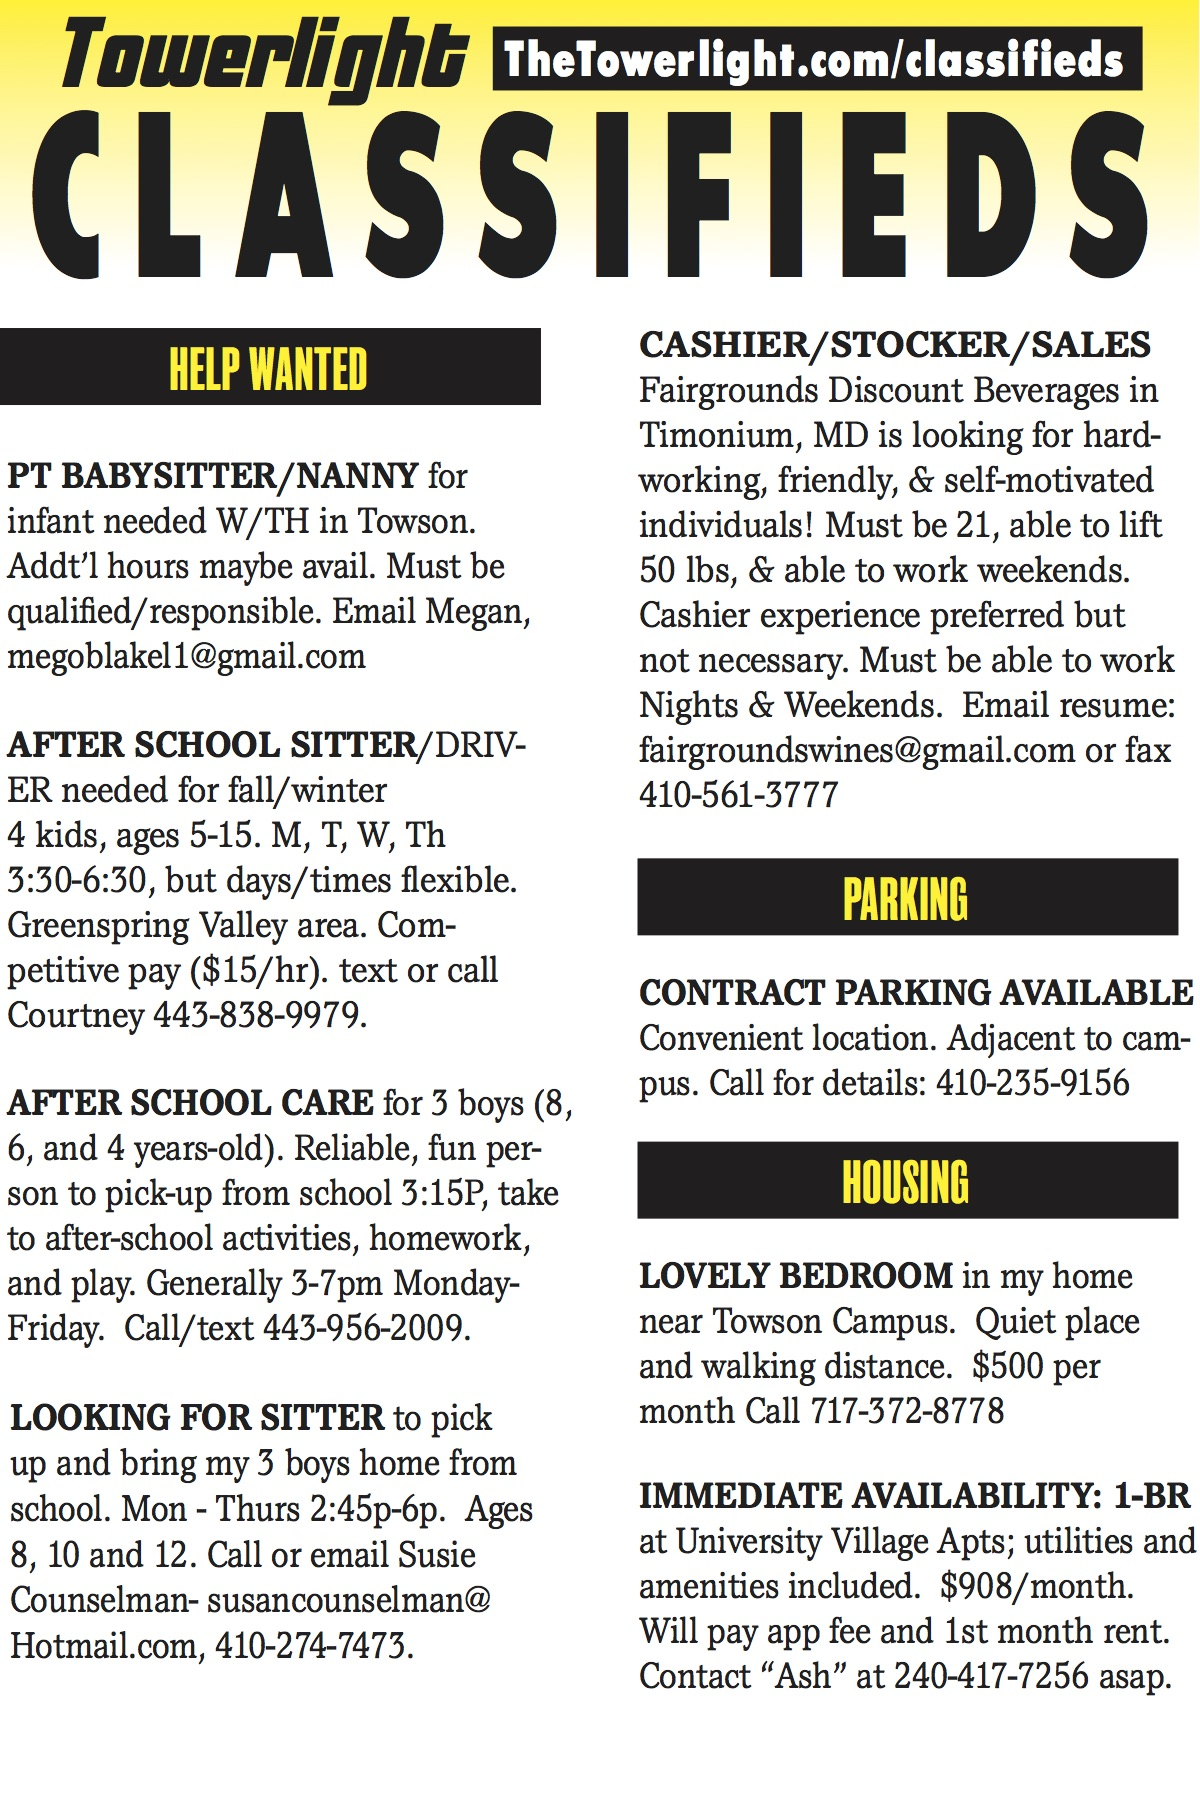 Classifieds08-21THISONE